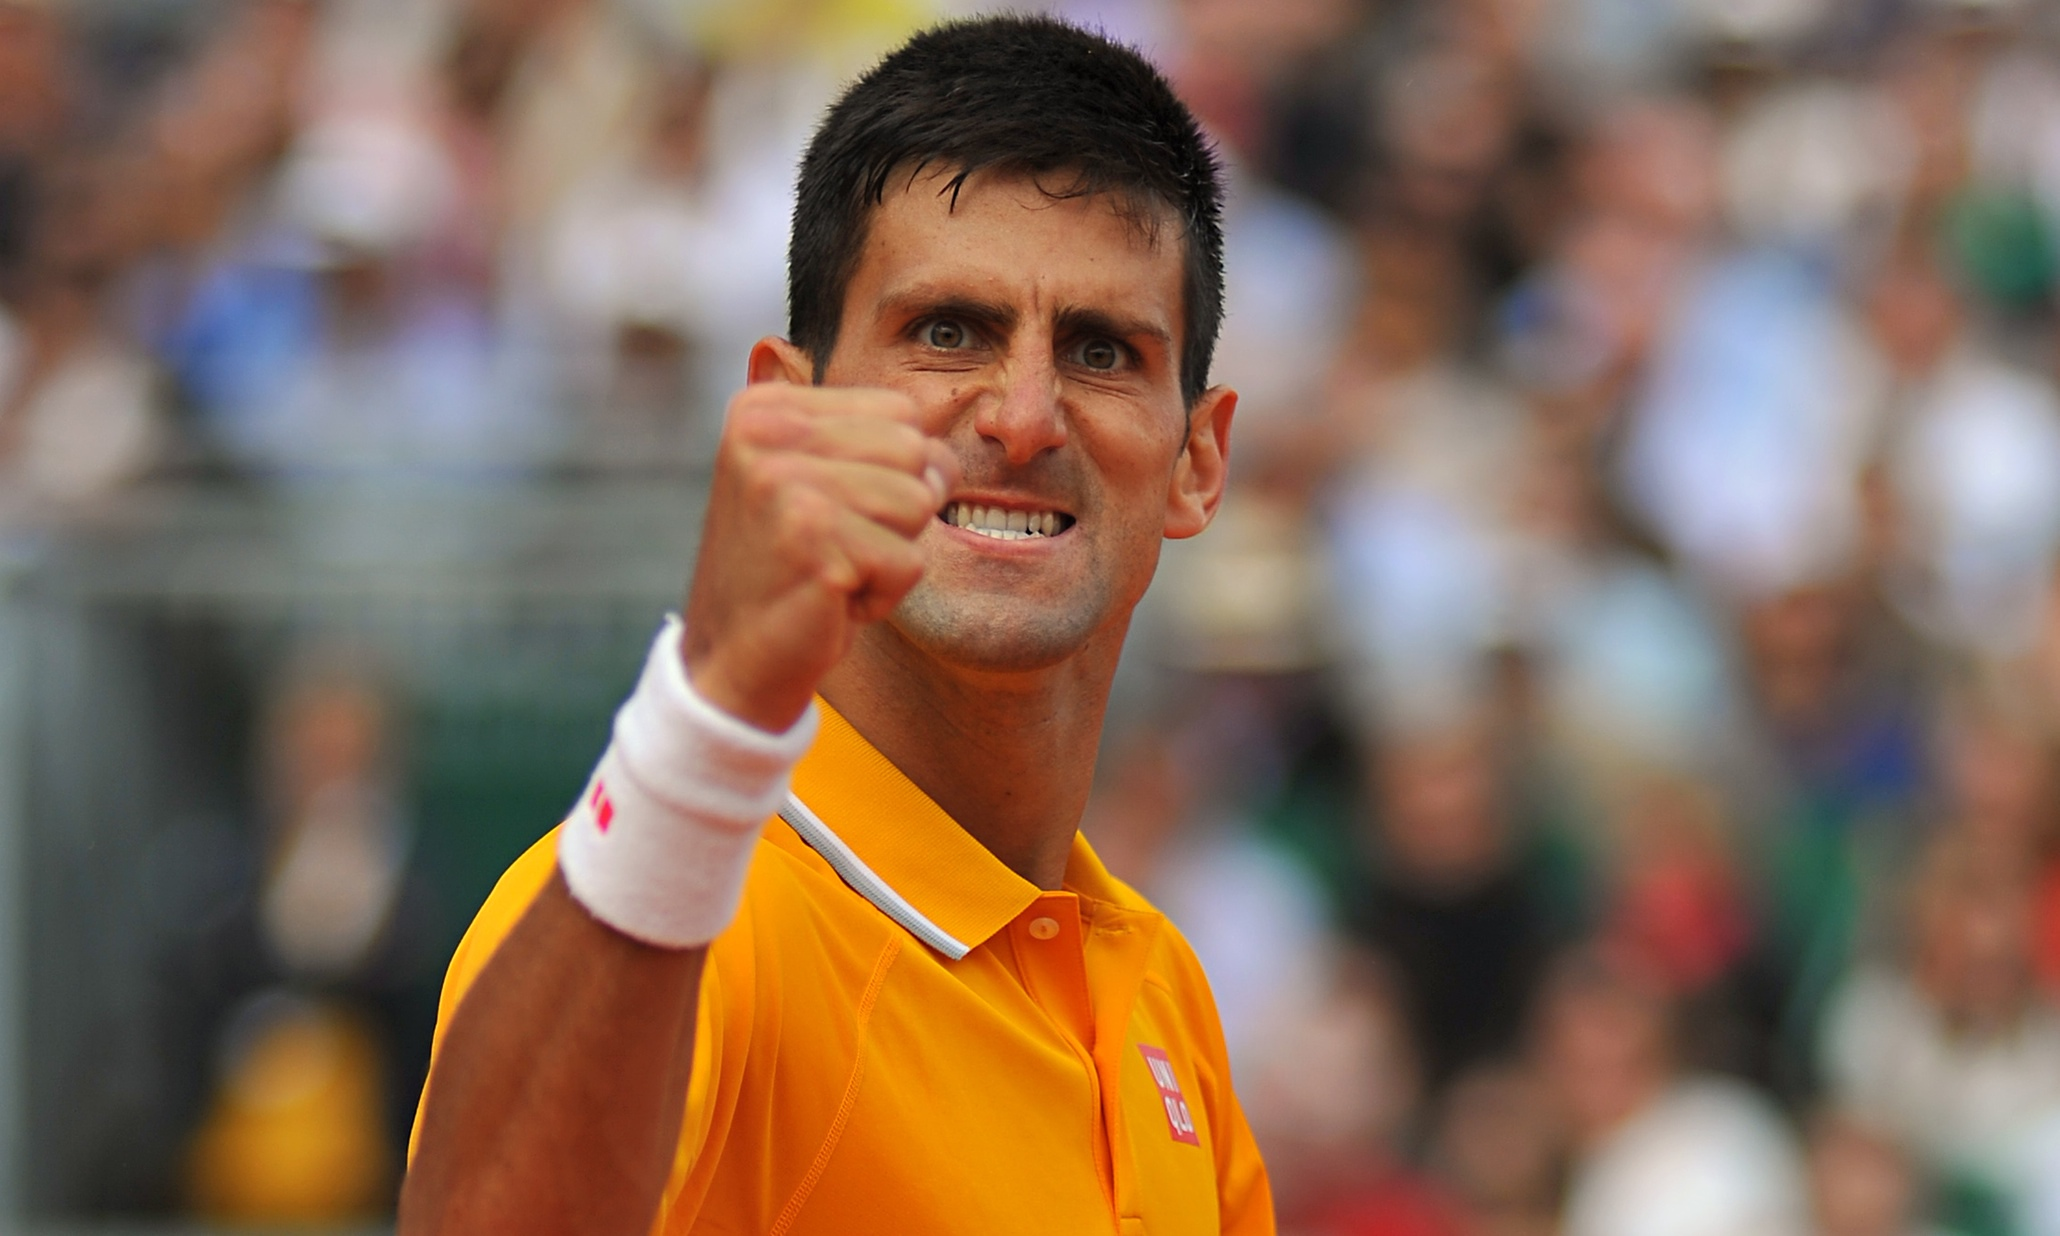 novak djokovic - photo #45